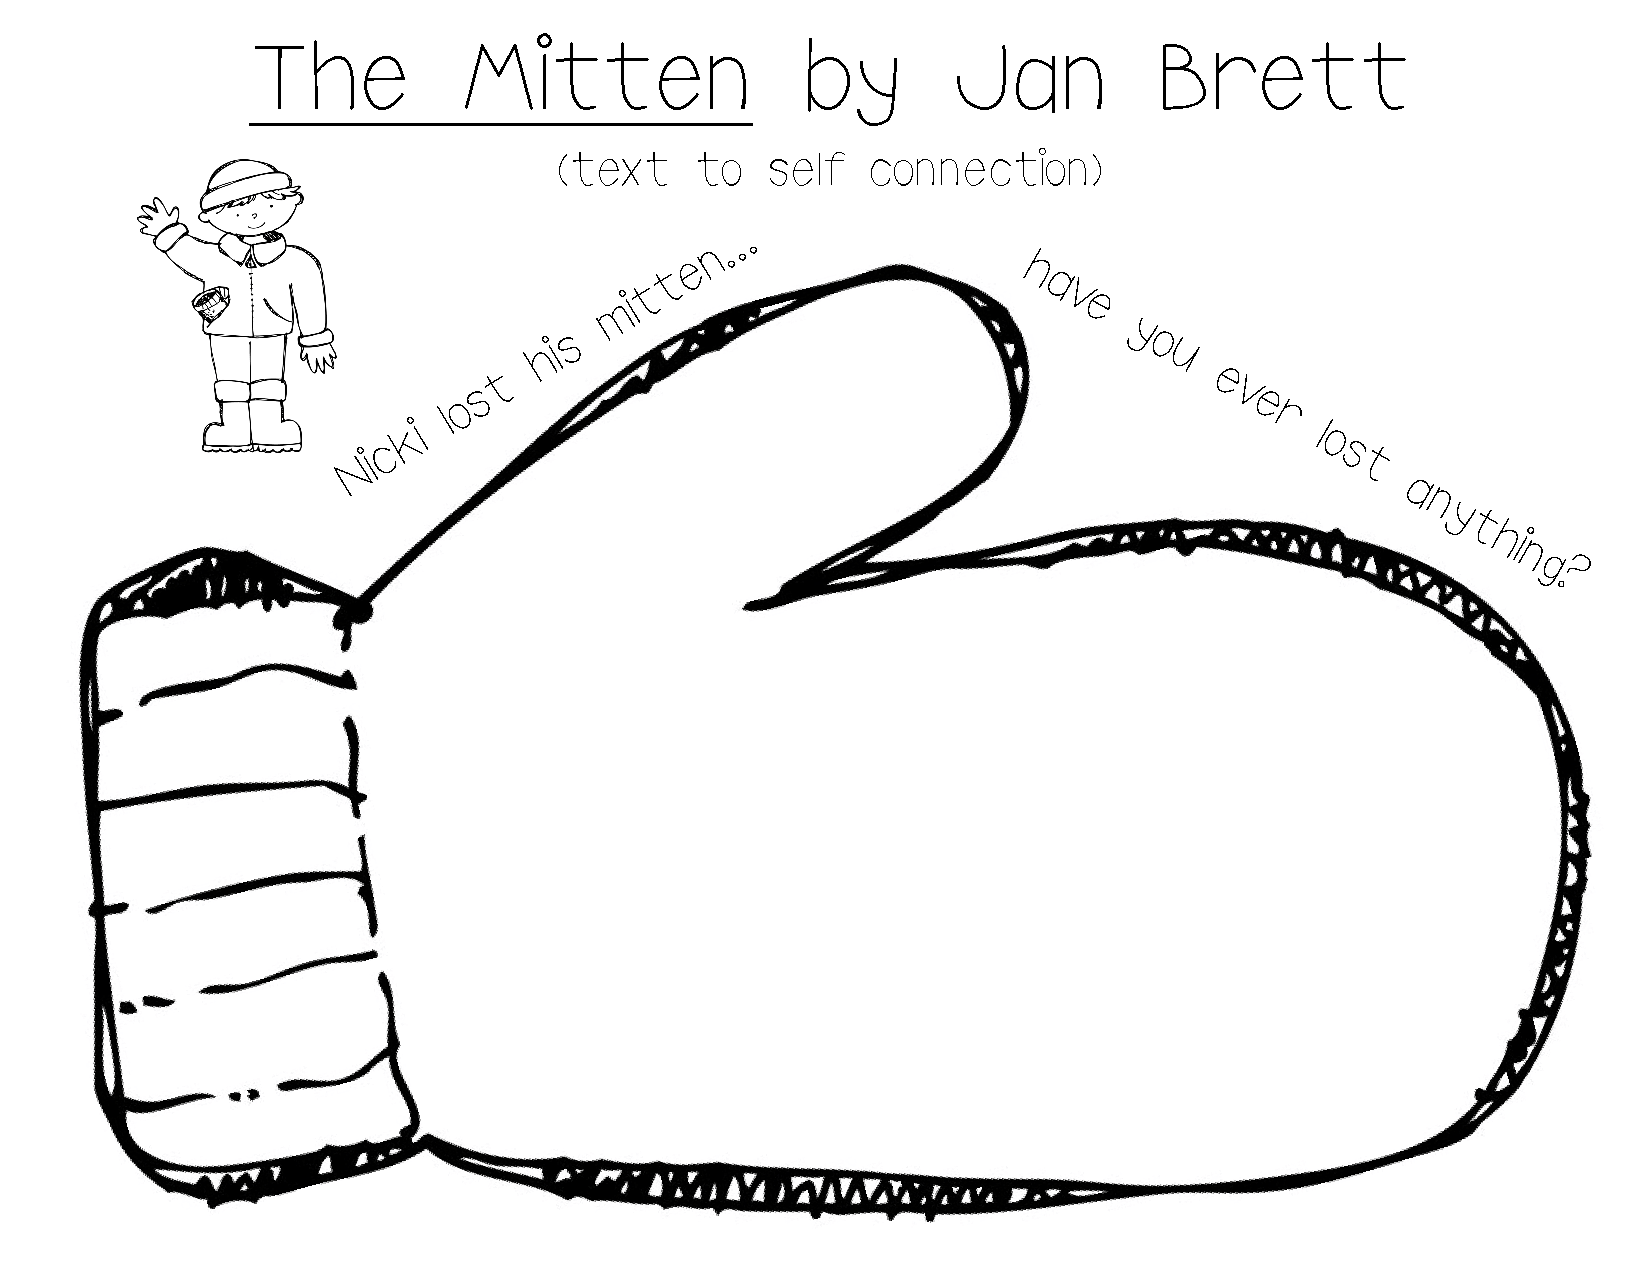 The Mitten Is Something Grades 3rd To 5th Can Use To Learn Subjects Of Language Arts And Reading